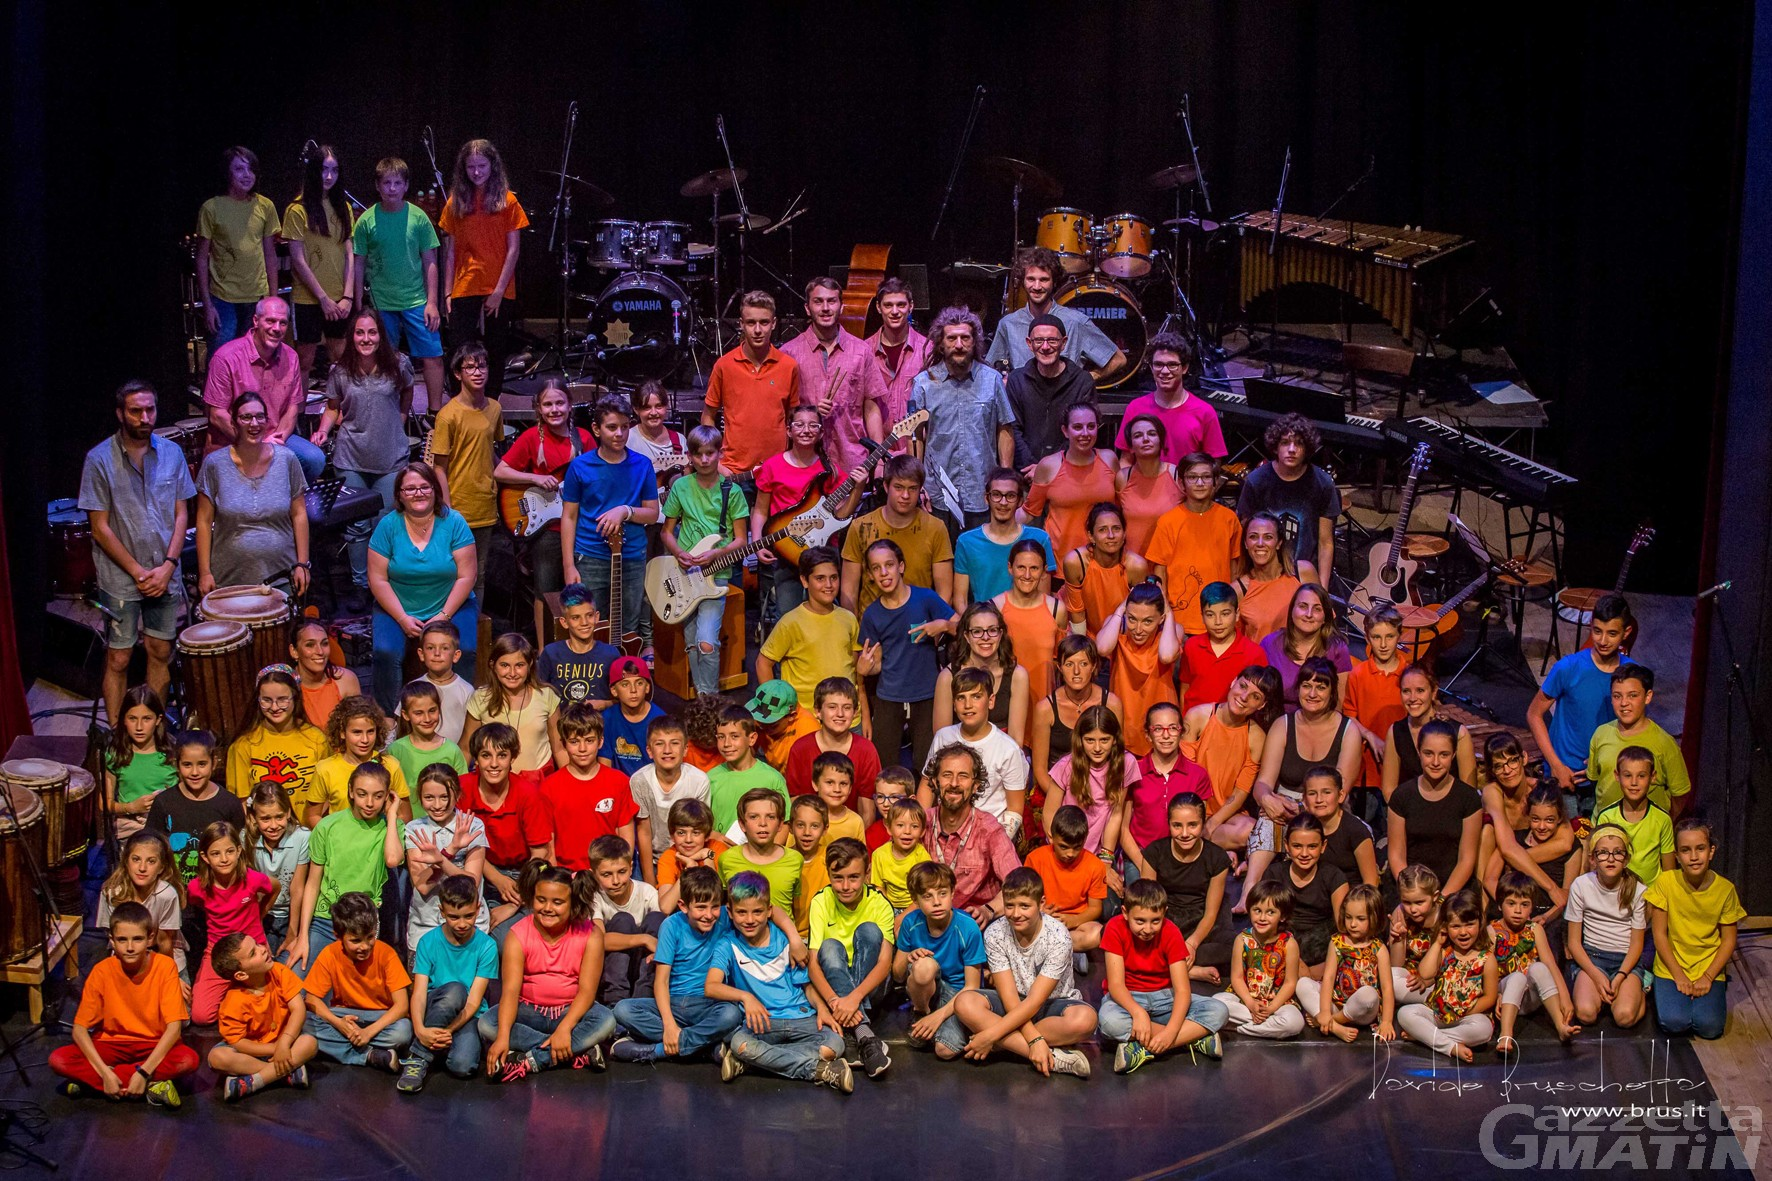 Flash mob: concerto online su Zoom del Cluster Ensemble SGMD